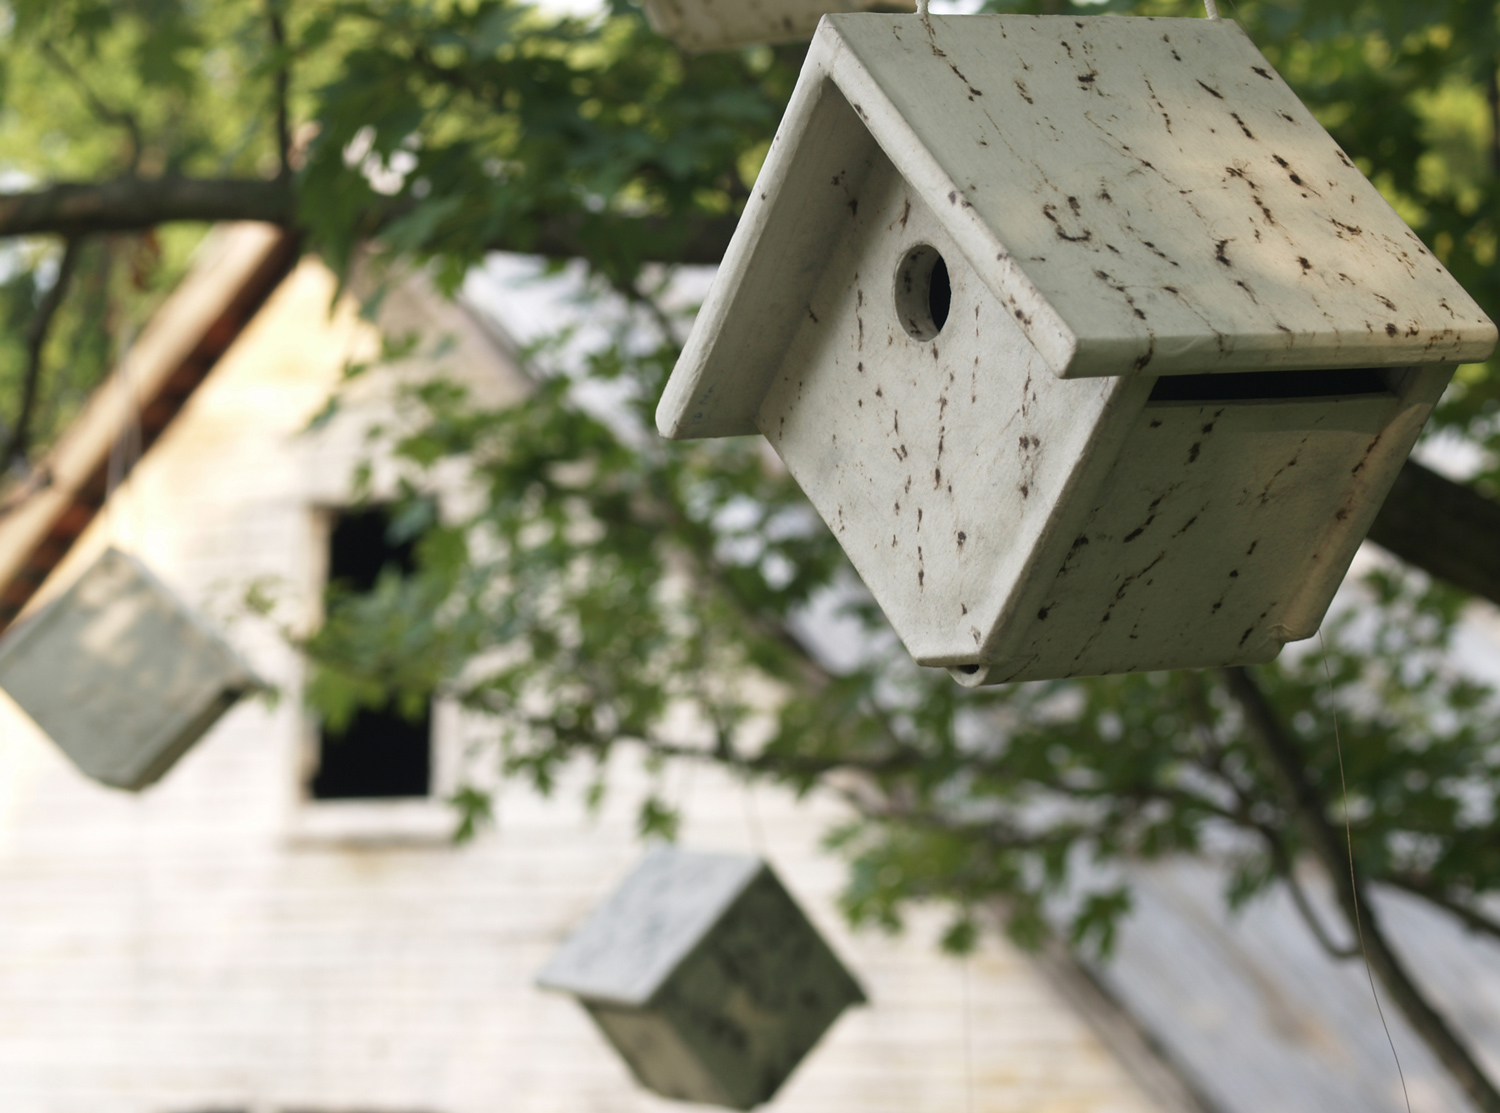 Detail of birdhouse from  Human Birdhouse  at the Schuykill Center, Pennsylvania, USA, September 2008.